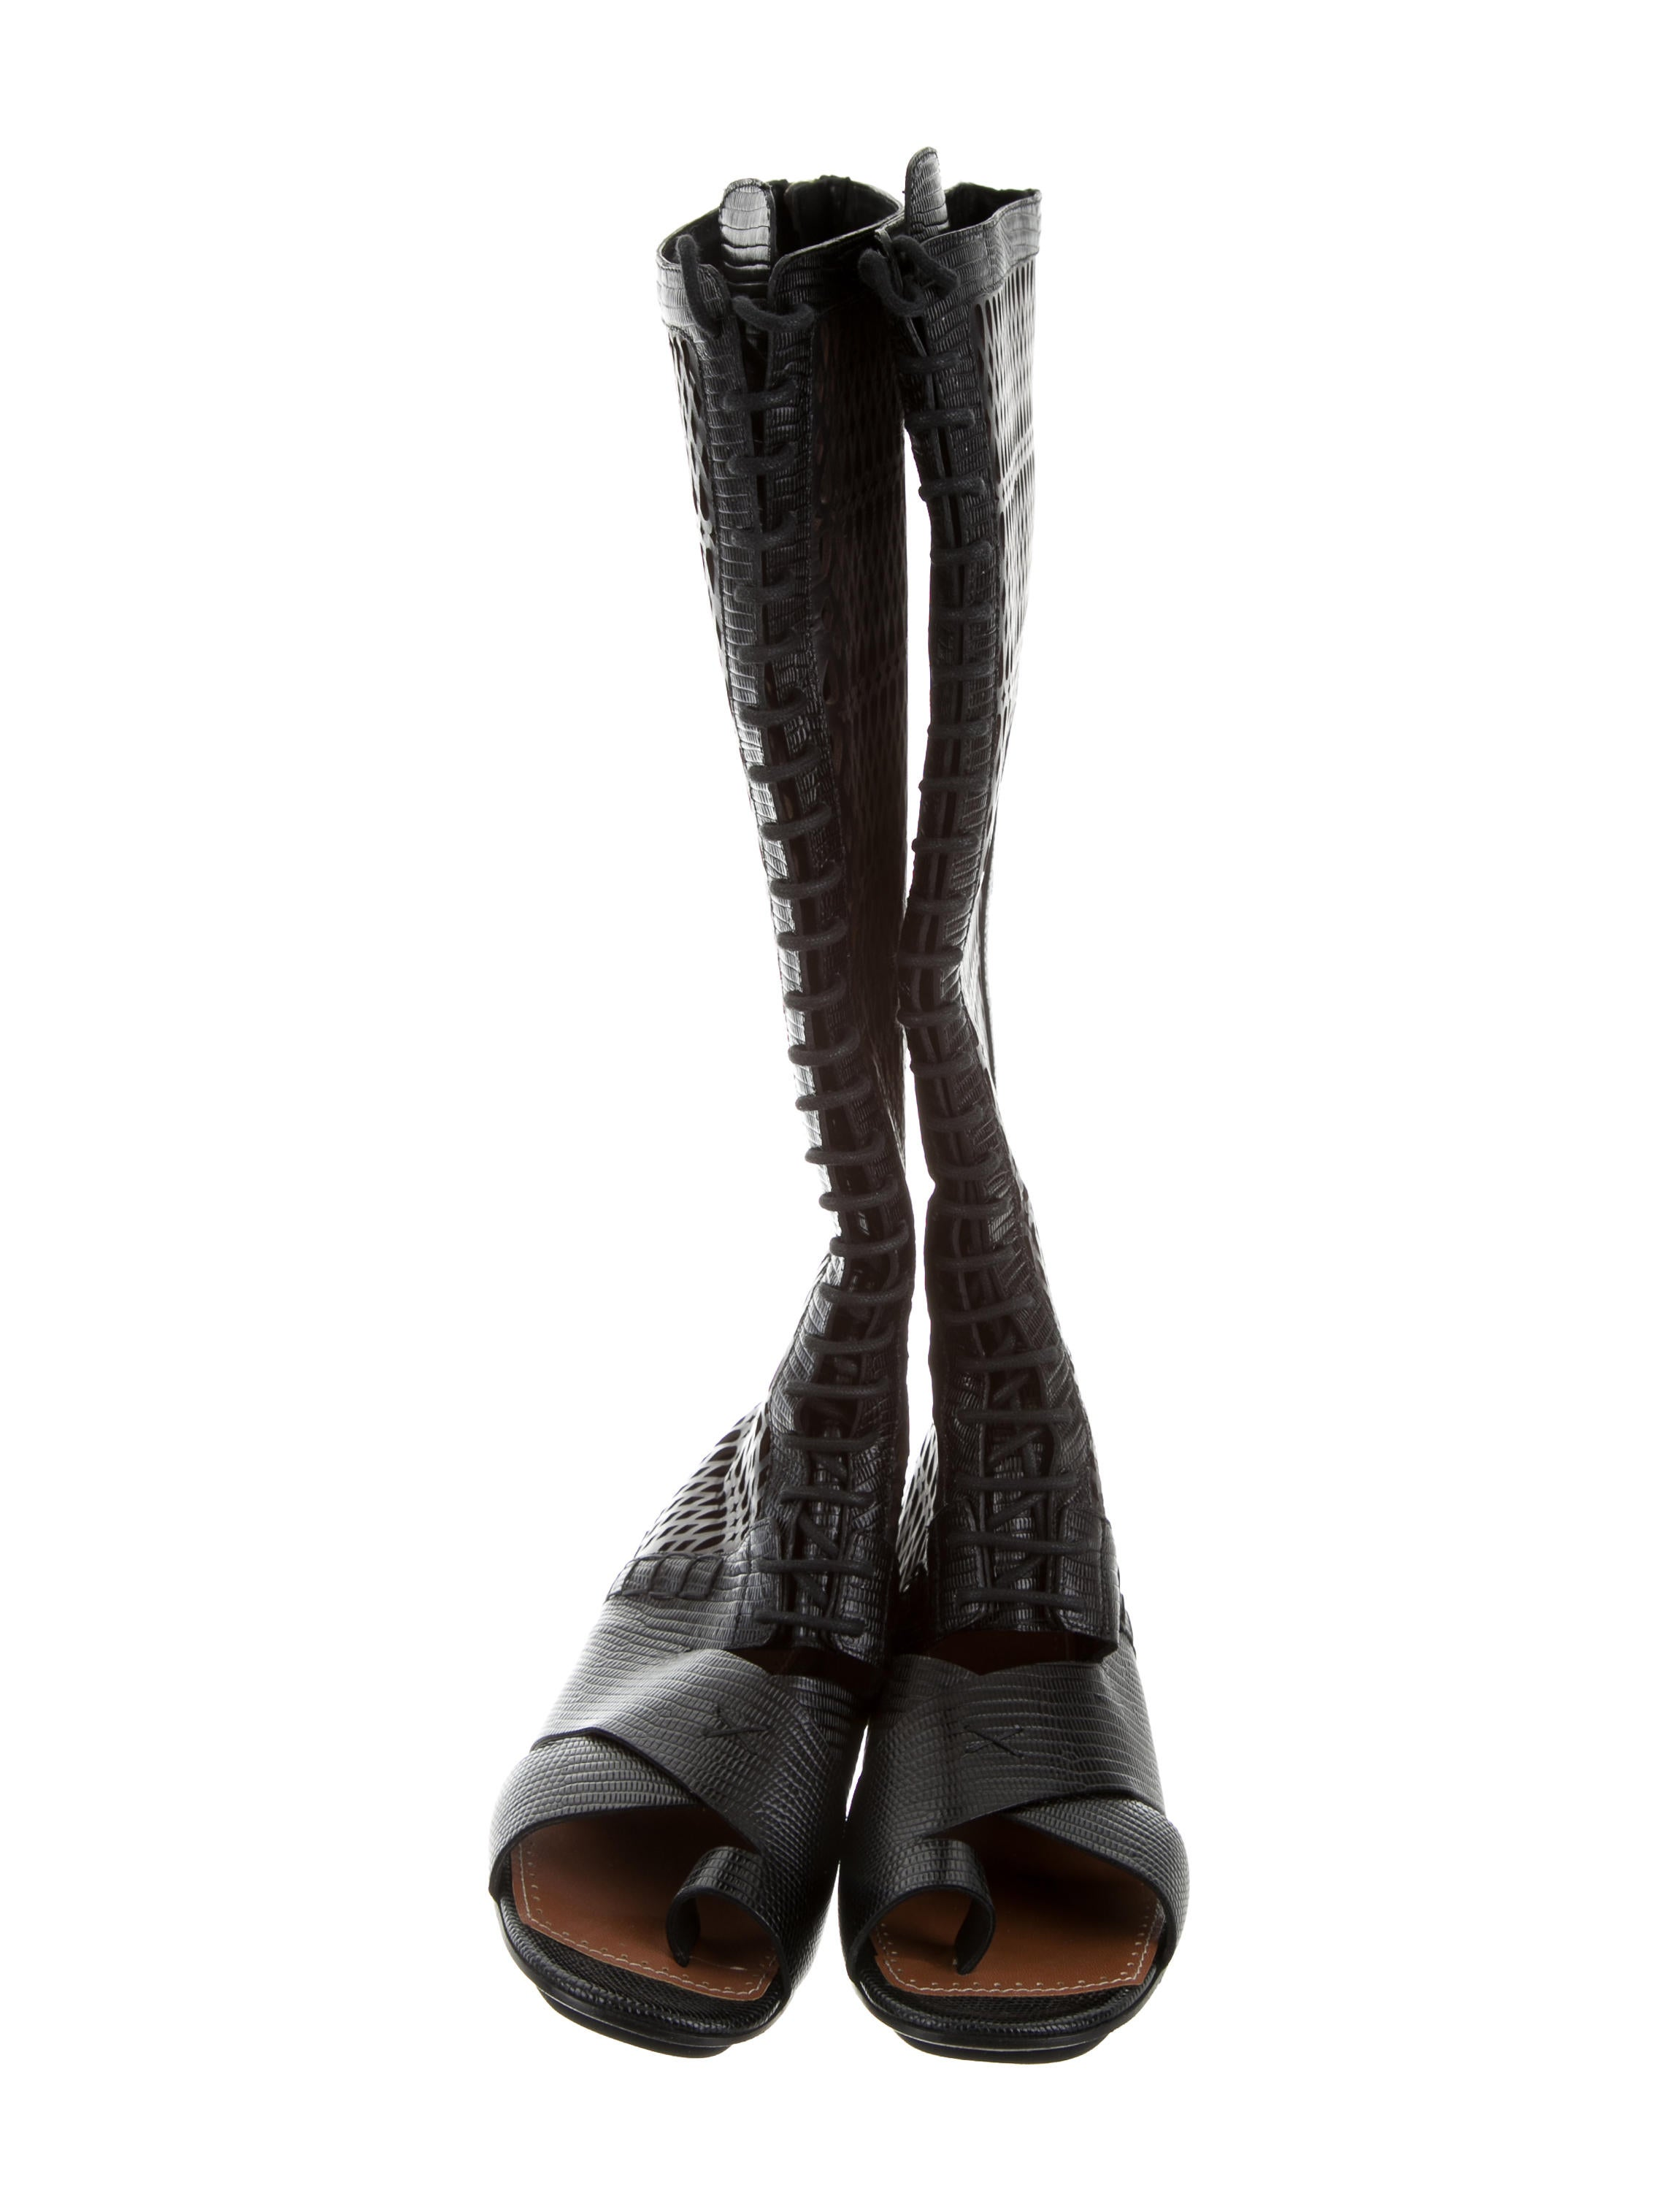 free shipping excellent Proenza Schouler Laser Cut Knee-High Boots nicekicks cheap price low price fee shipping cheap online buy for sale NEgw8QOLKd